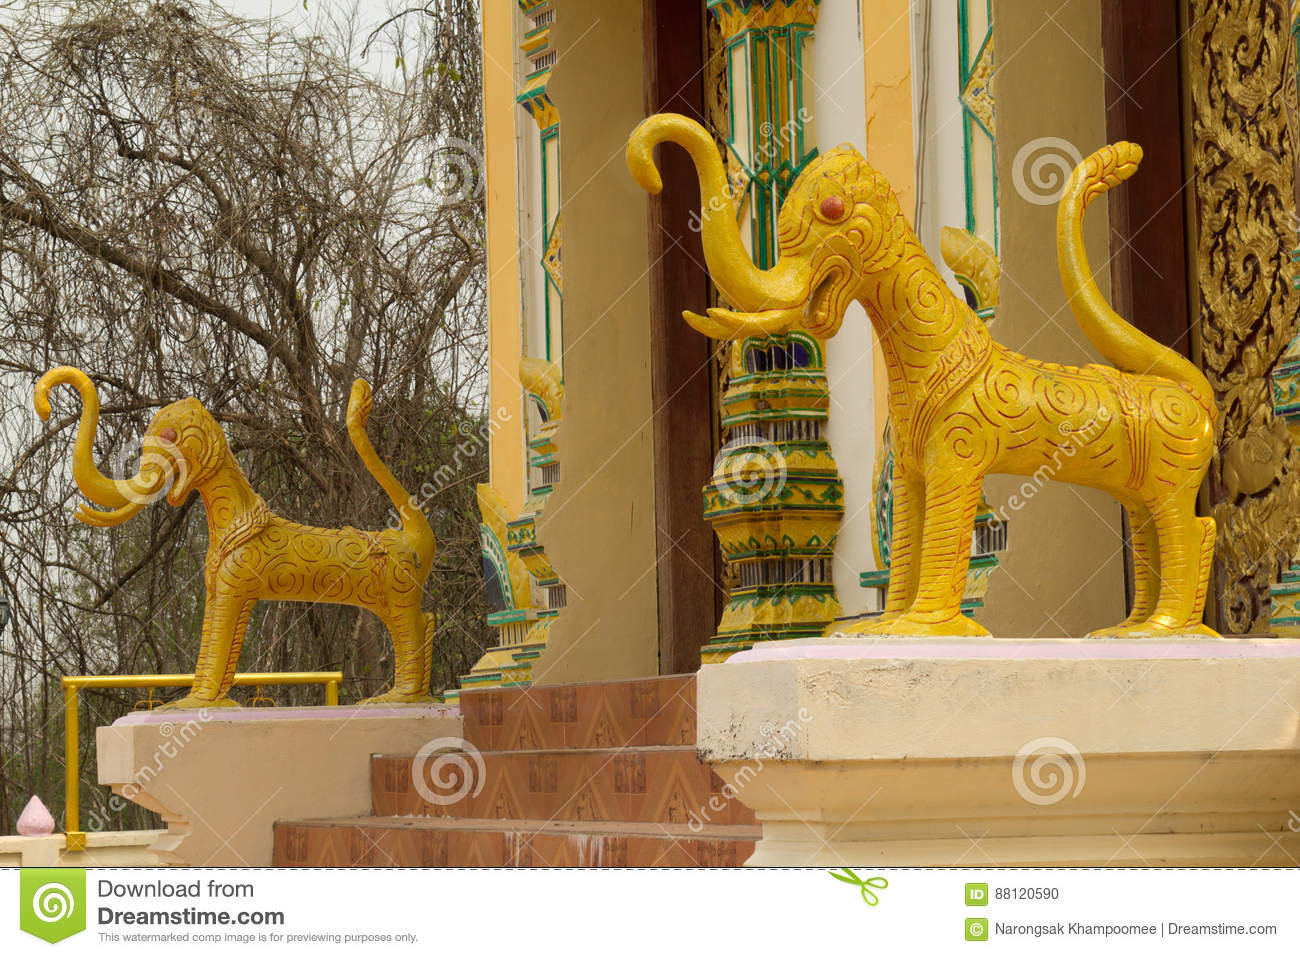 The Lion statues at Temple,Thailand